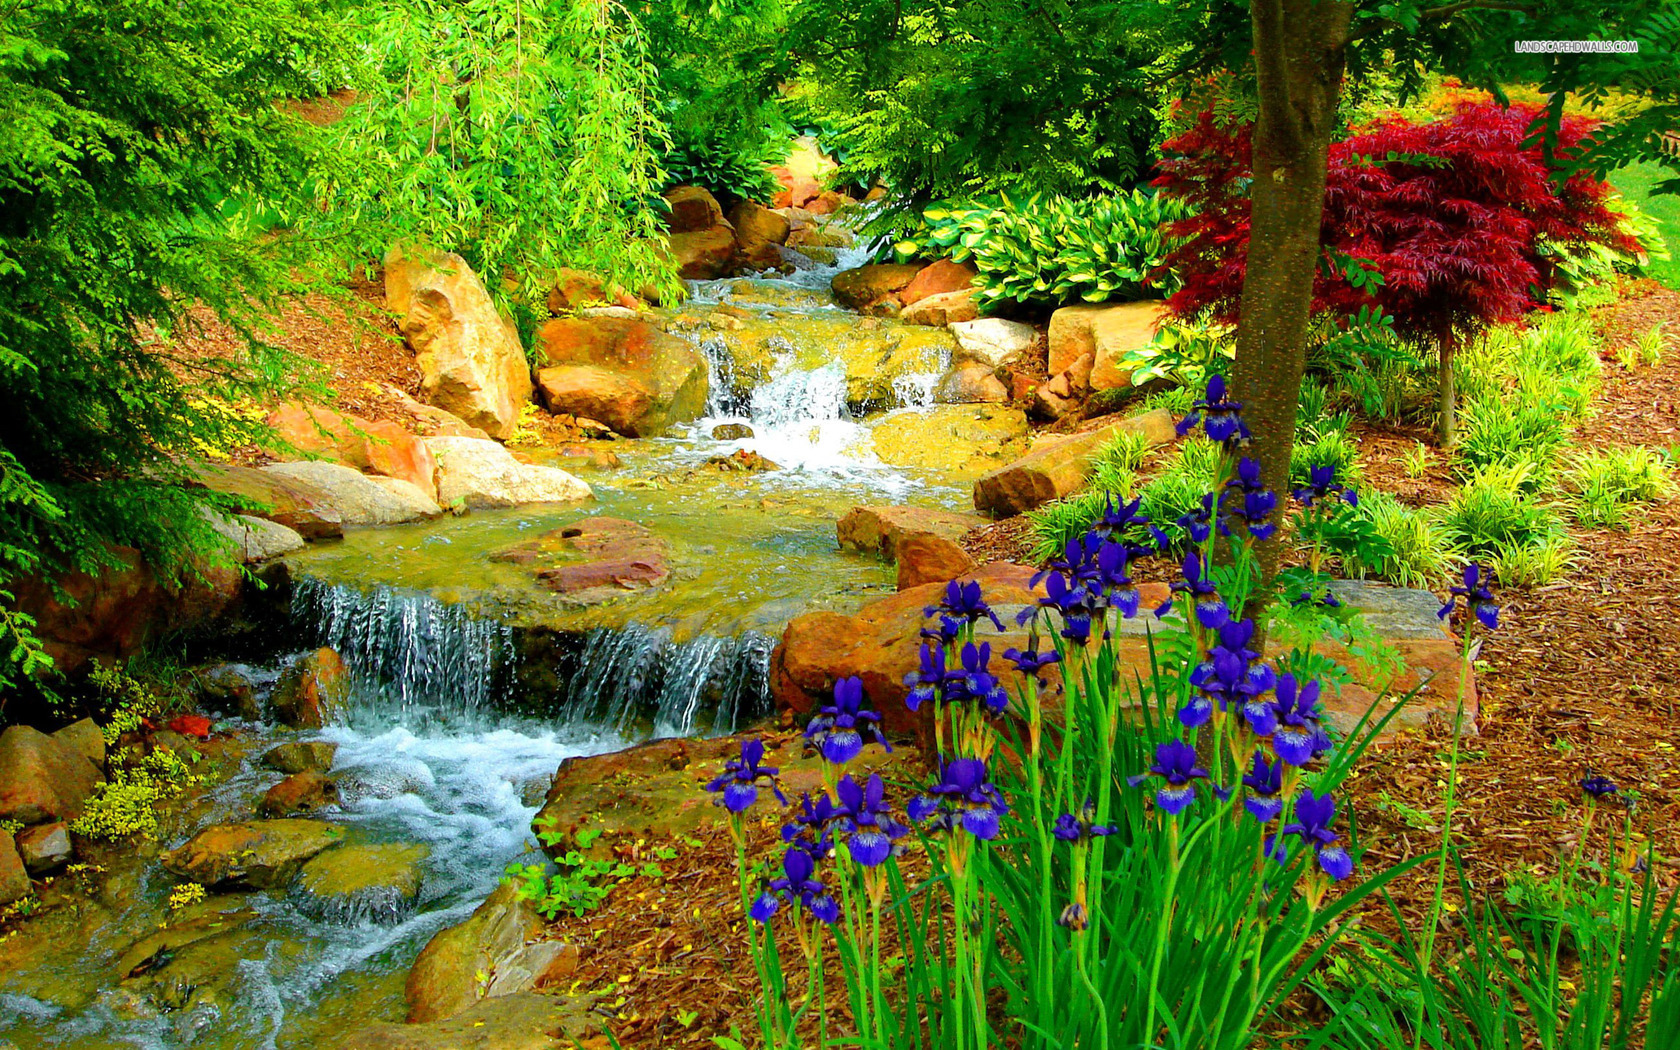 small-stream-in-the-flower-garden-2371-1680x1050